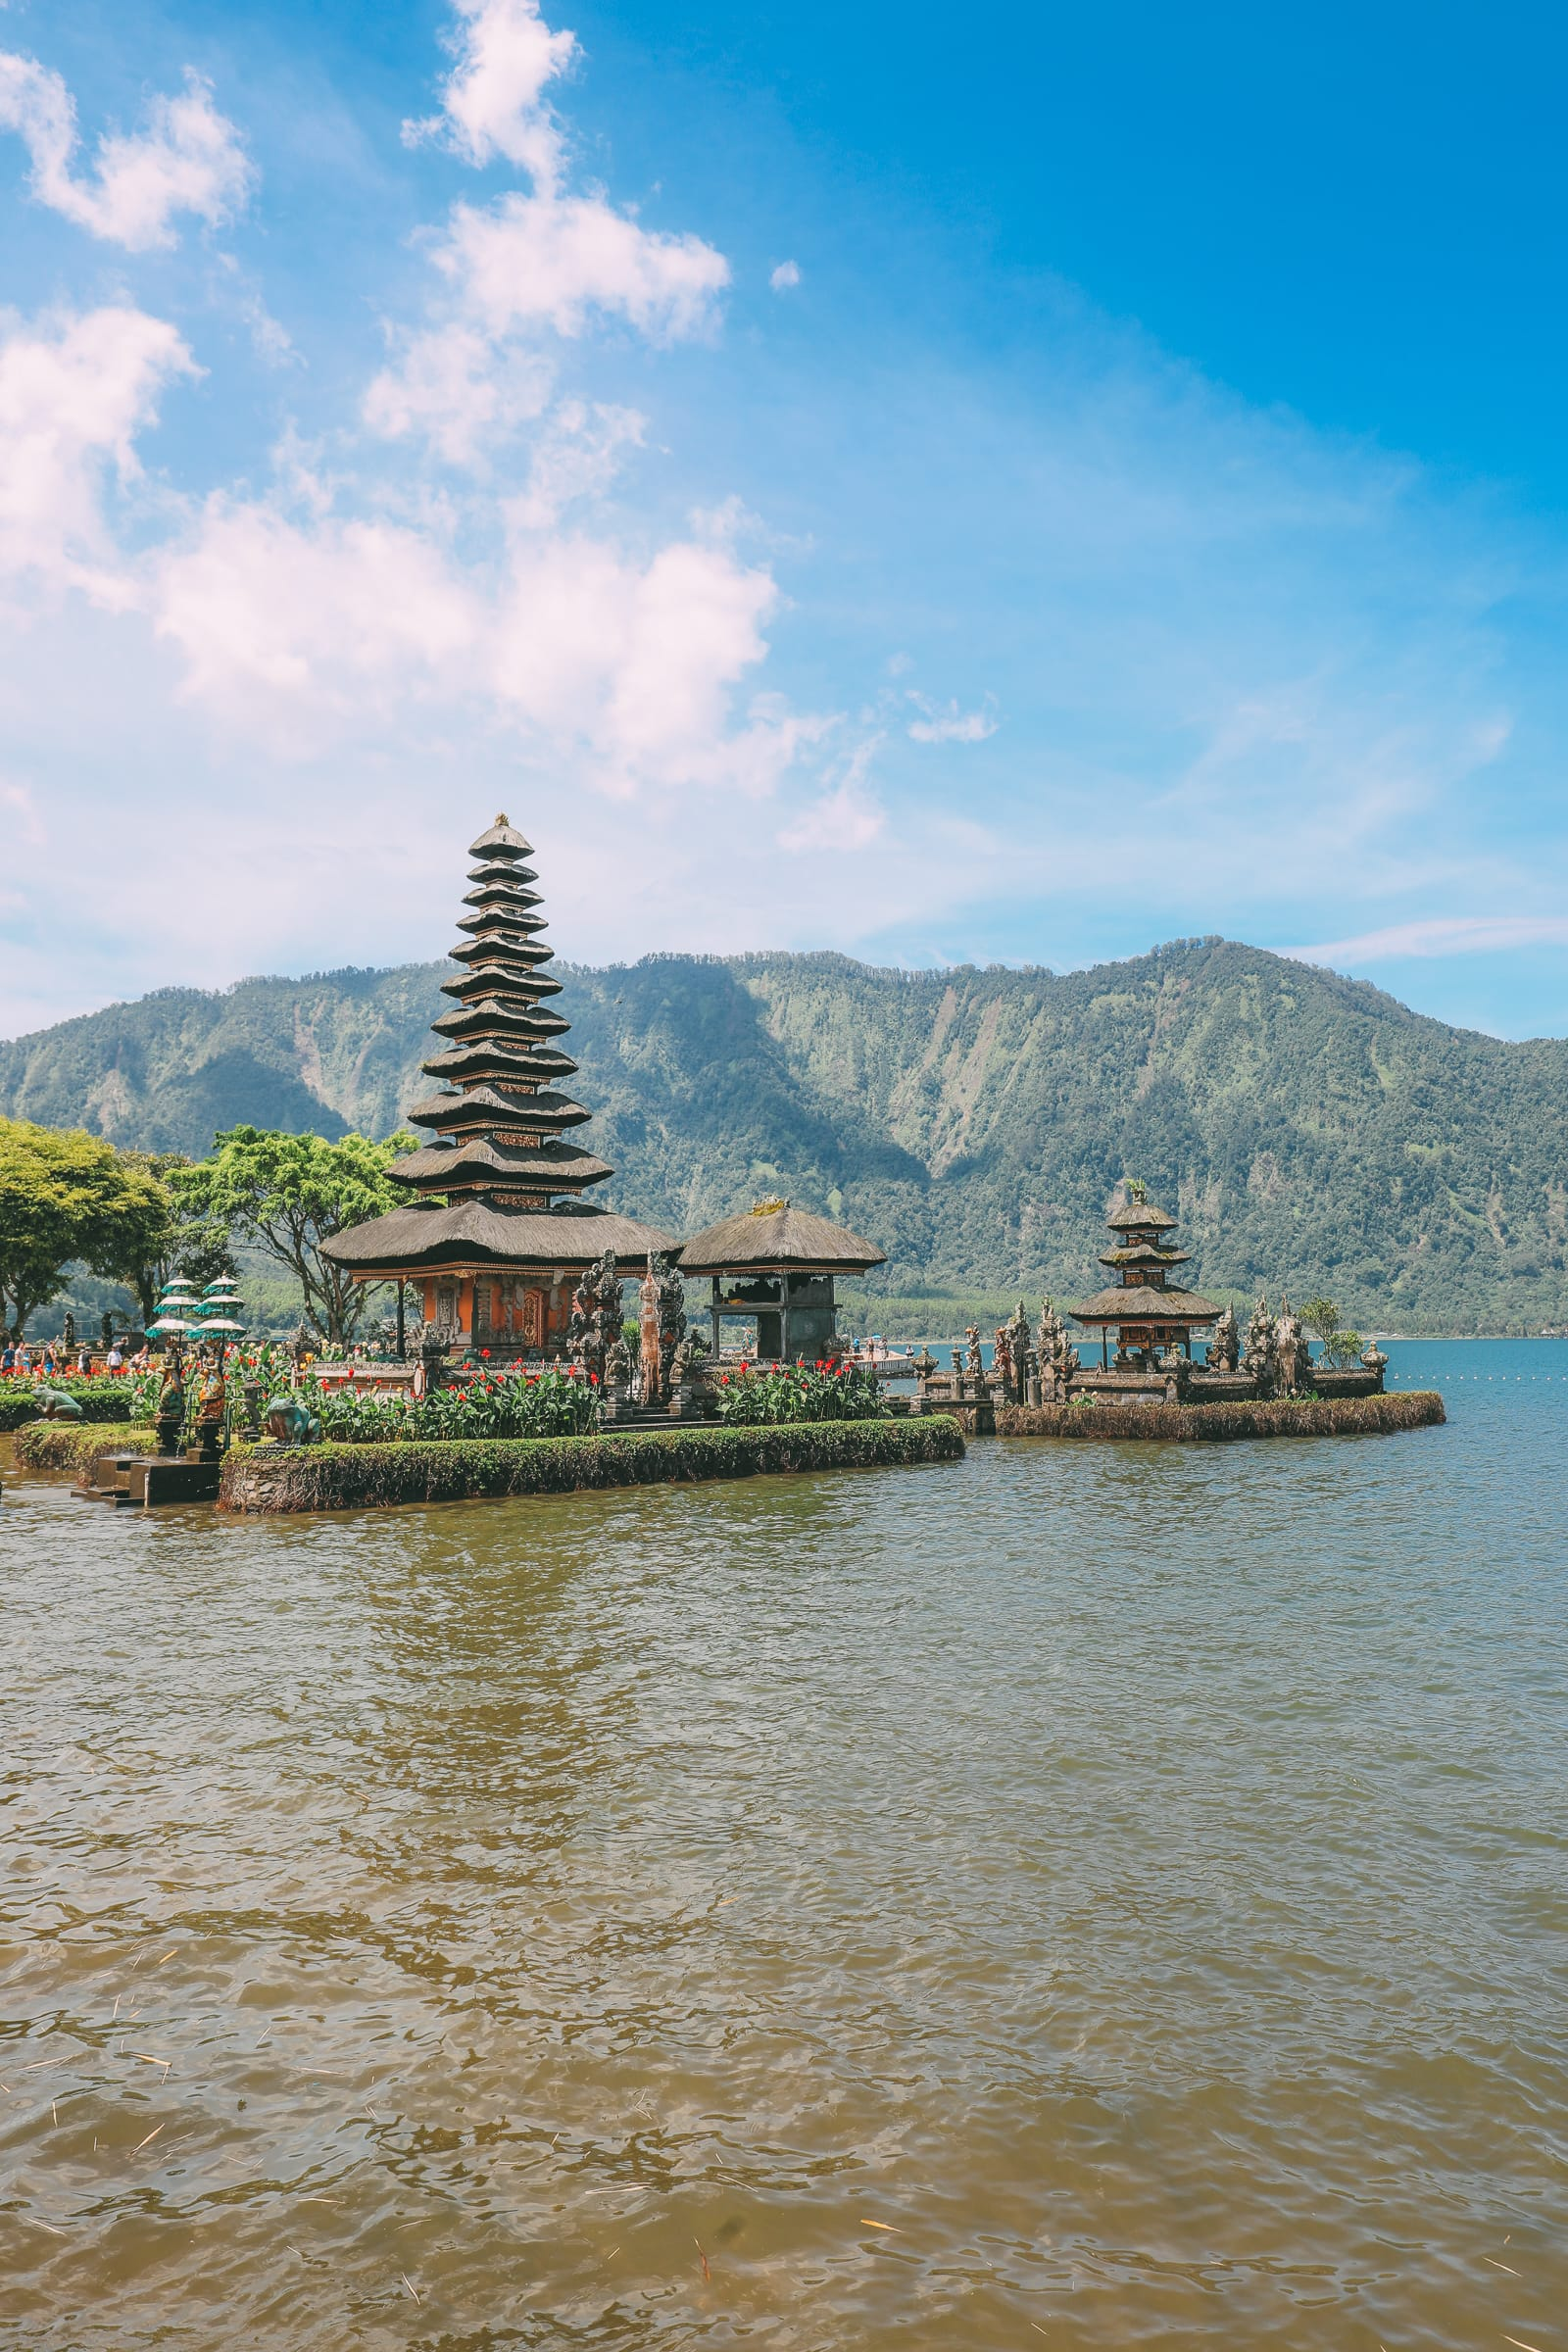 Bali Travel - The Beautiful Nungnung Waterfall And Ulun Danu Bratan Temple (30)